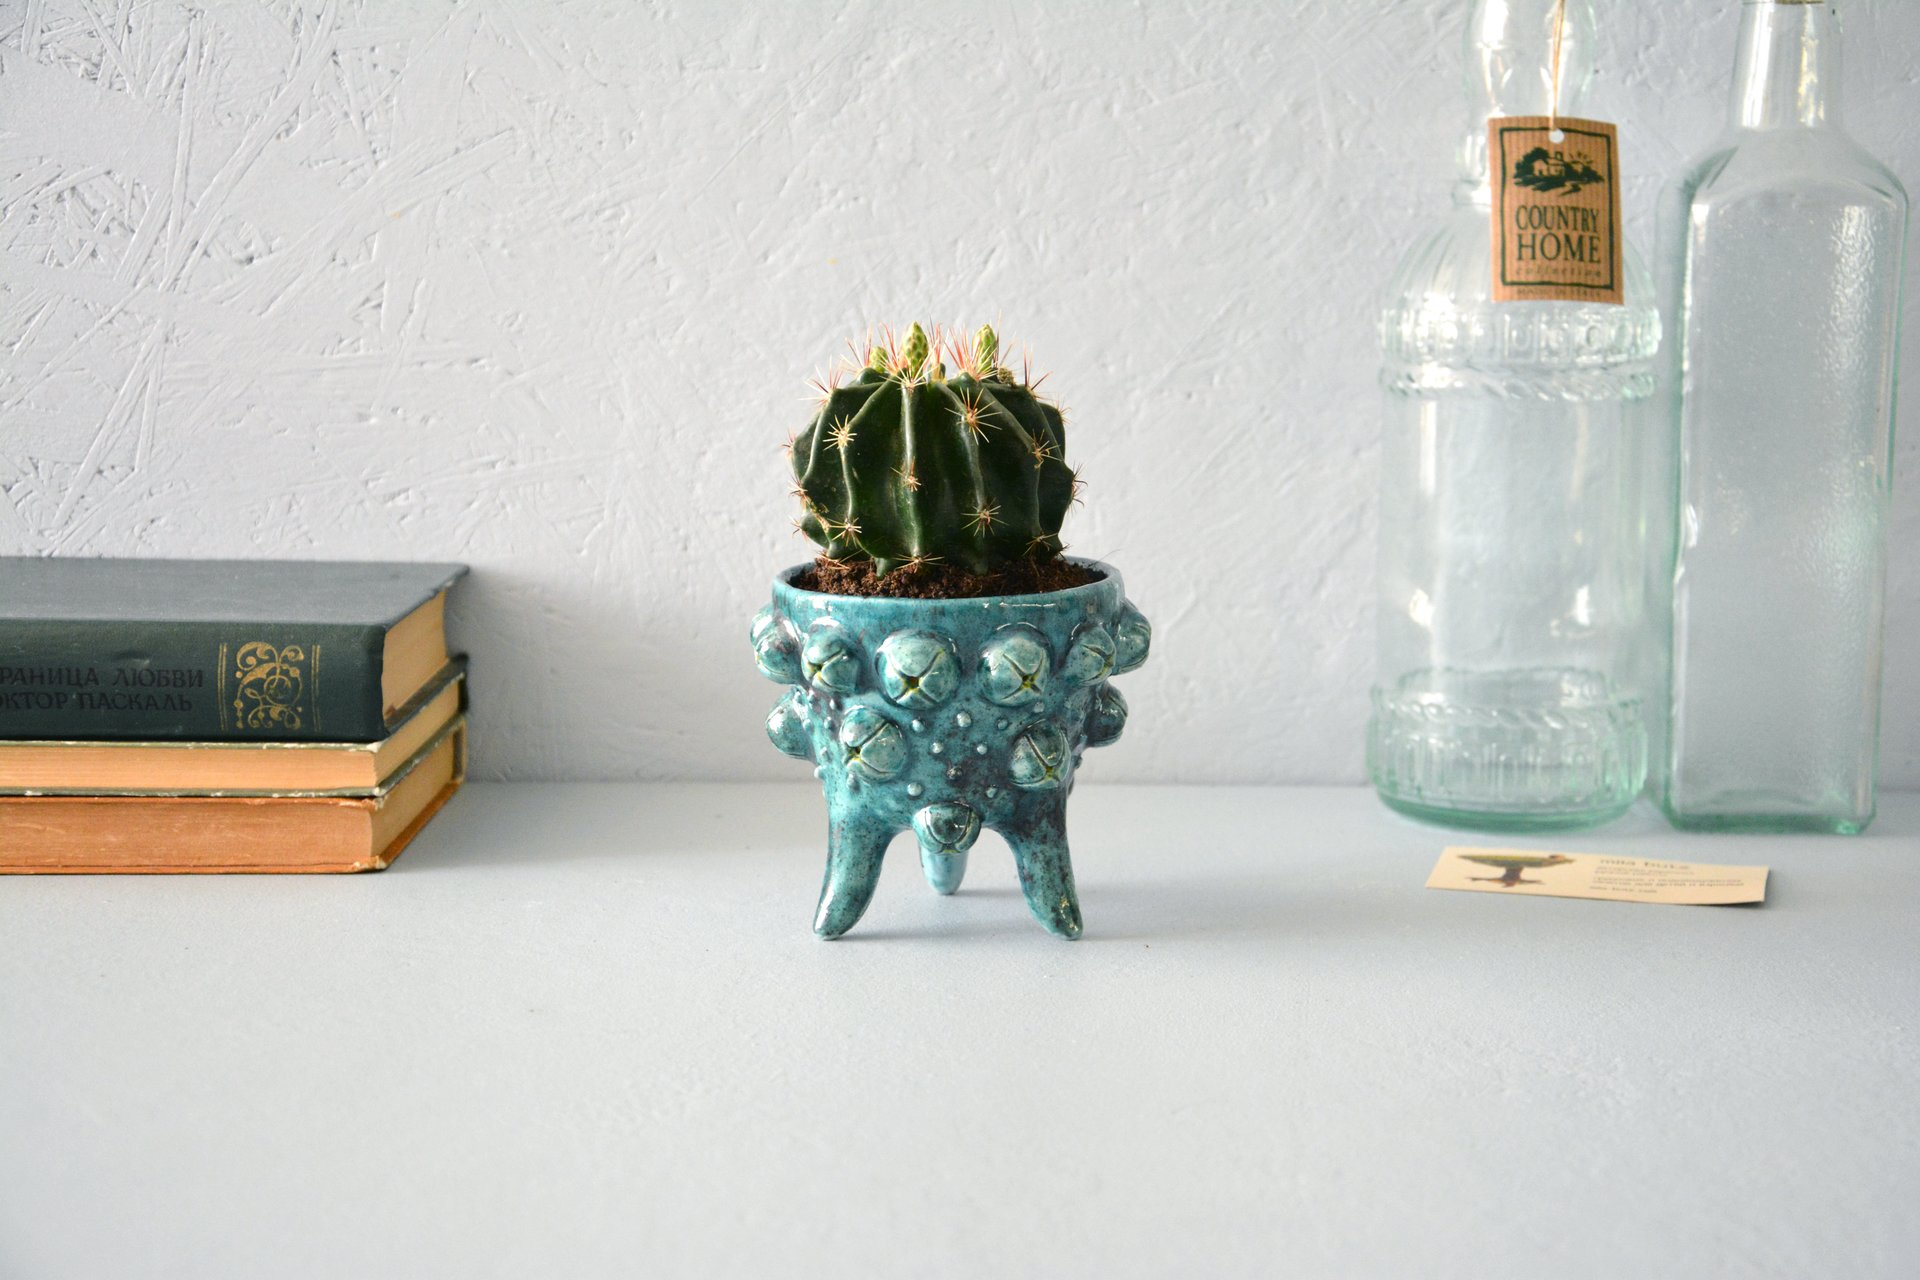 Ceramic cachepot for cactus on the legs Turquoise flicker, diameter - 10 cm, height - 9.5 cm, photo 1 of 4.